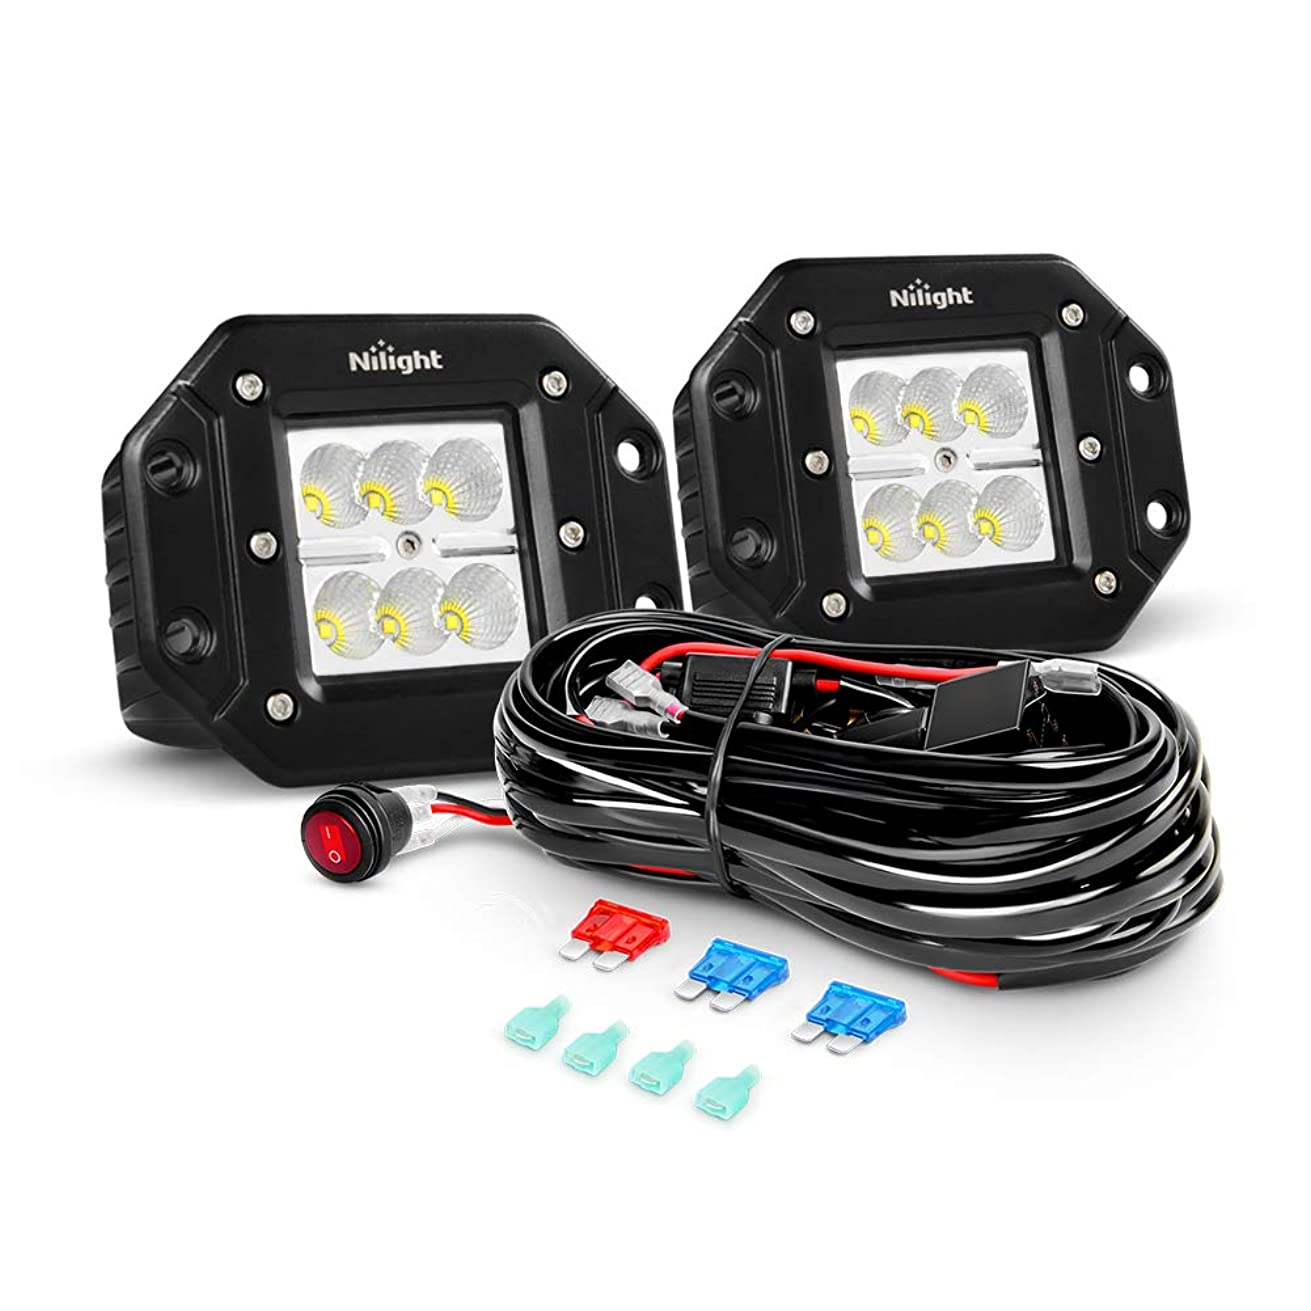 Nilight ZH050 2PCS 18W Flood Flush Mount LED Work Fog Driving Lights with Off Road Wiring Harness, 2 Years Warranty